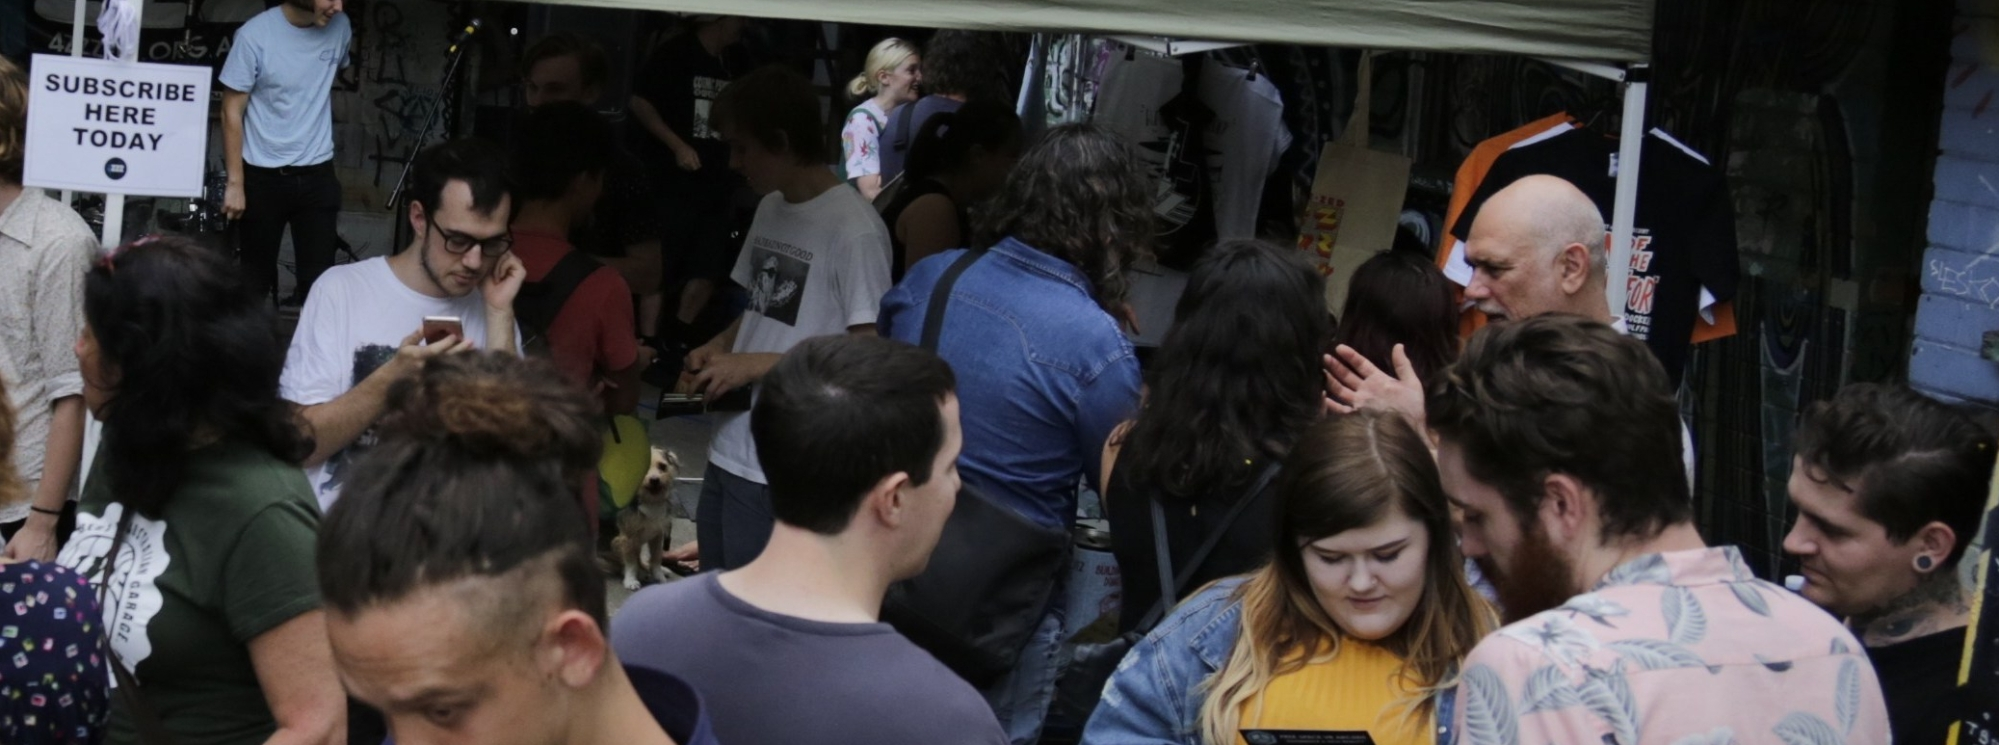 Crowd at a 4ZZZ carpark gig, photo by Matt Dennien